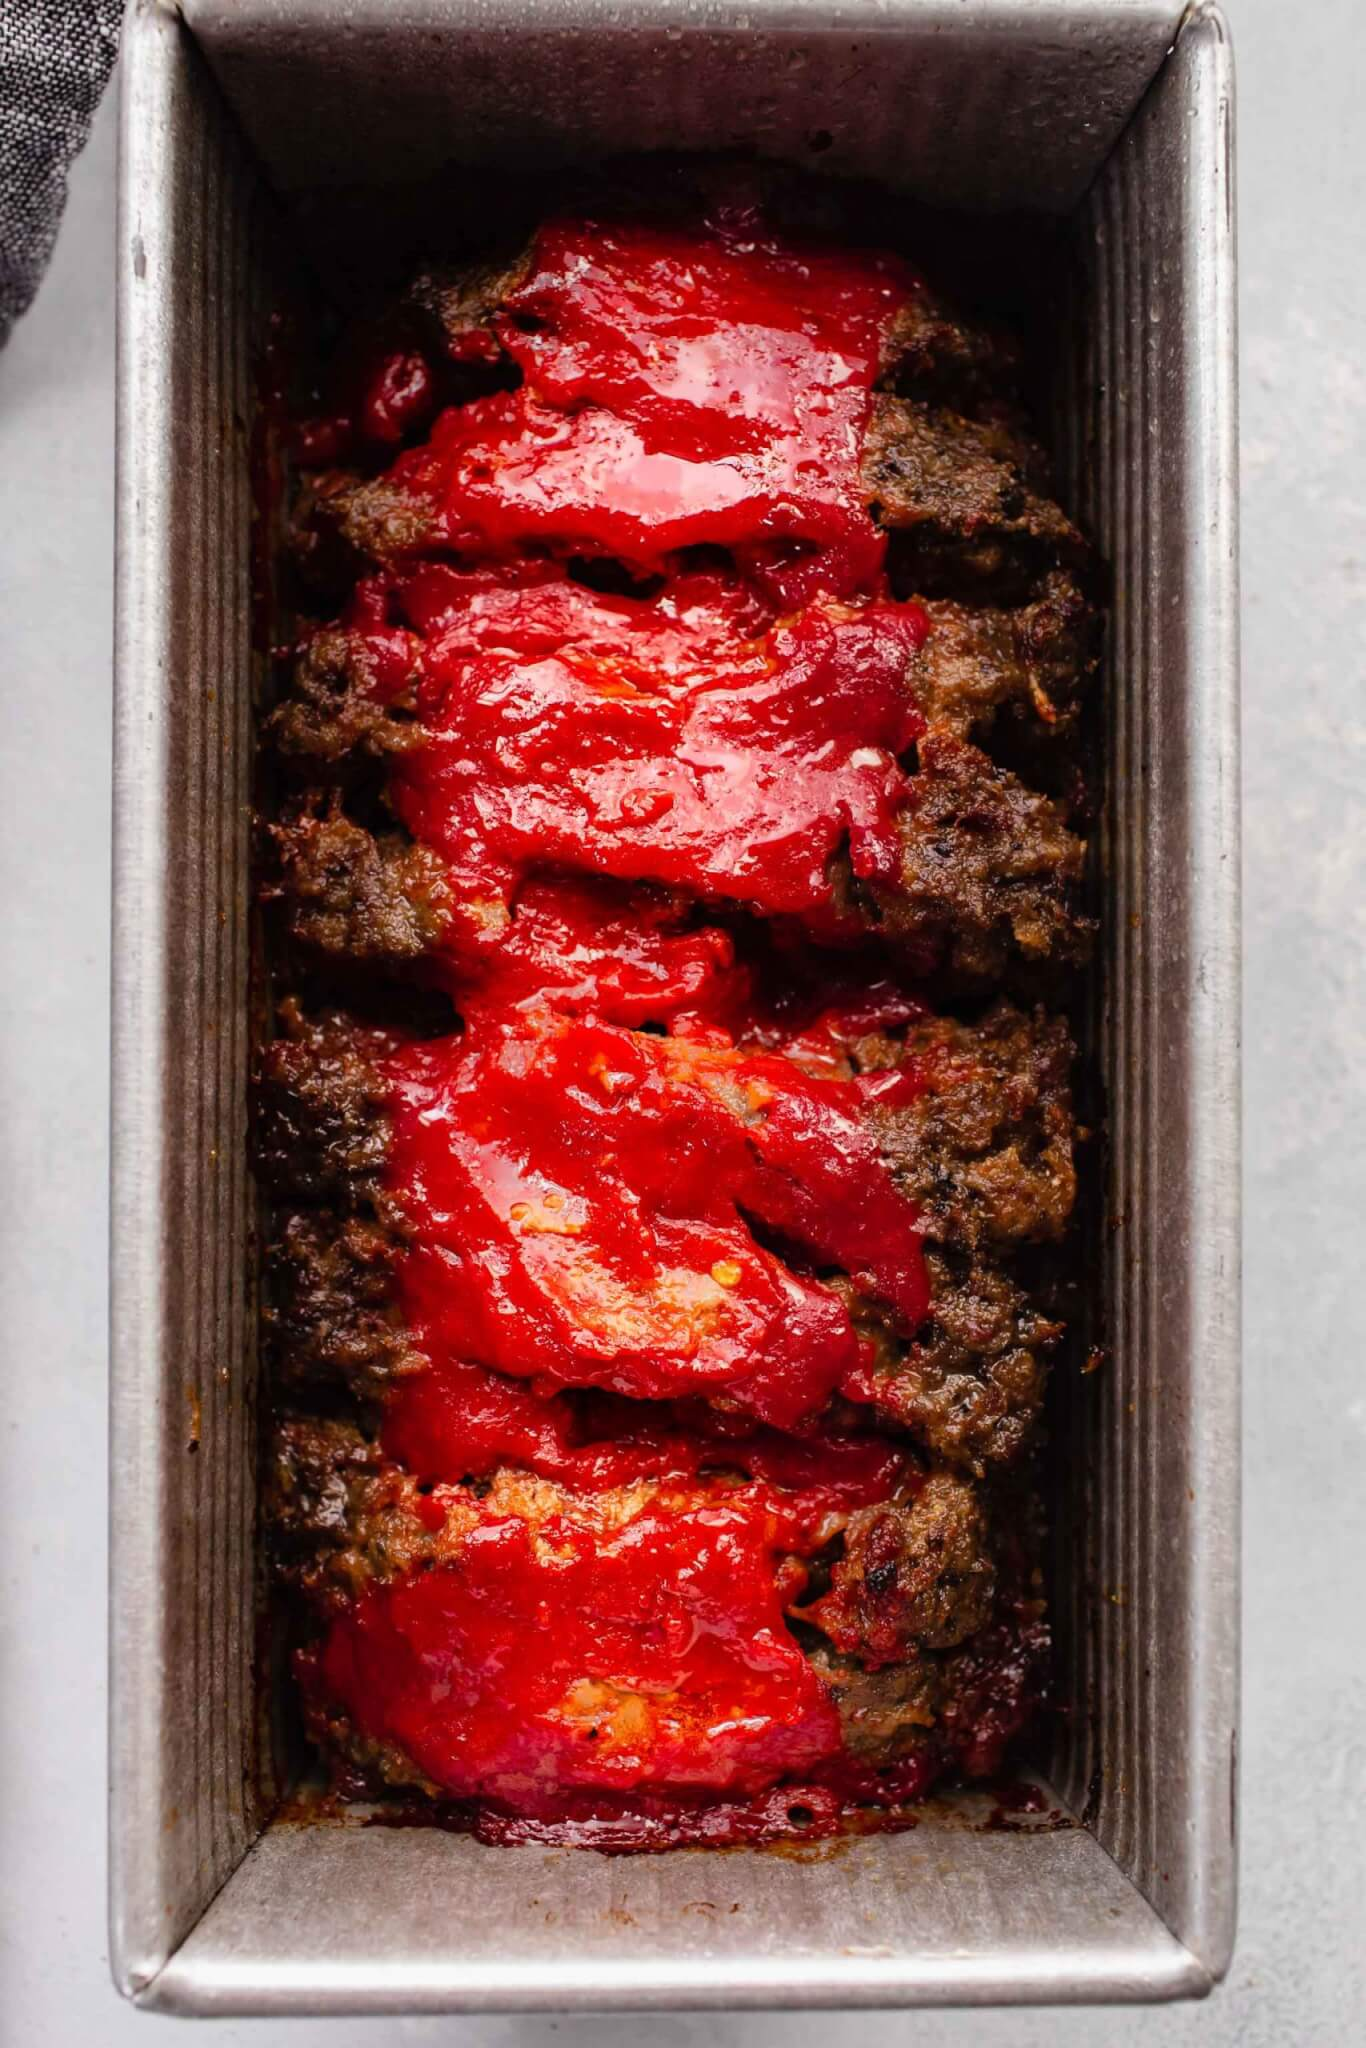 Finished baked meatloaf in loaf pan.